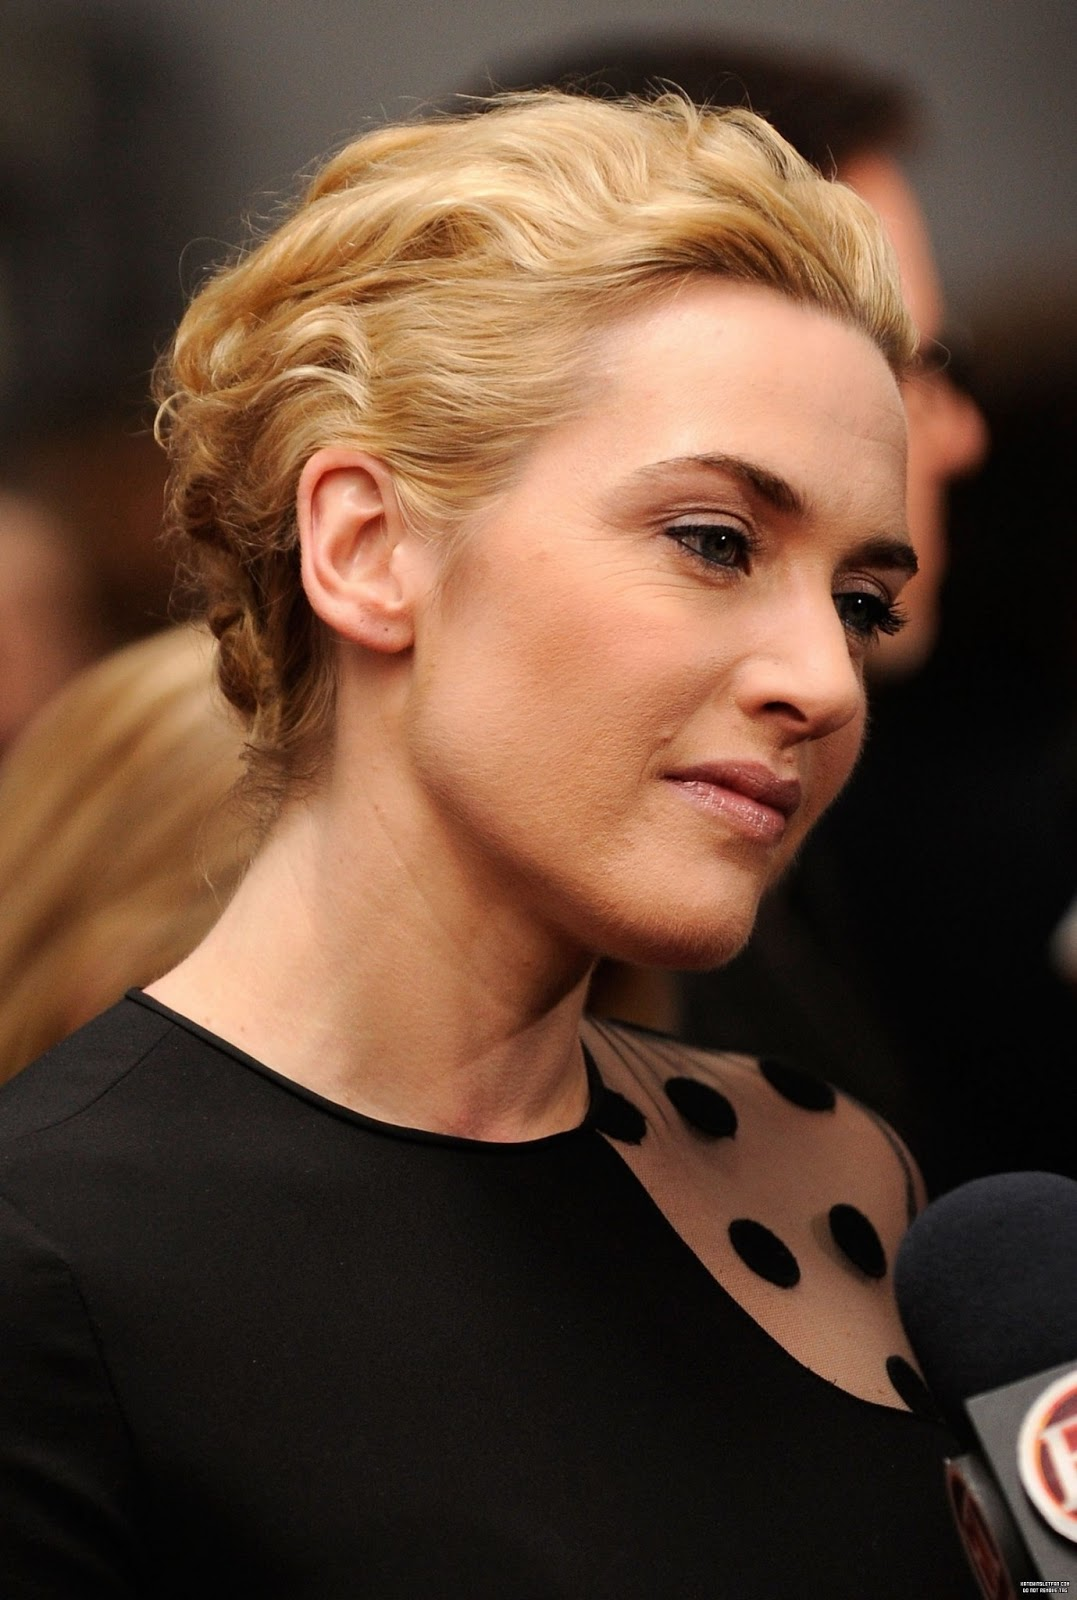 Free Download Wallpaper Hd Best Actress Kate Winsletkate Winslet